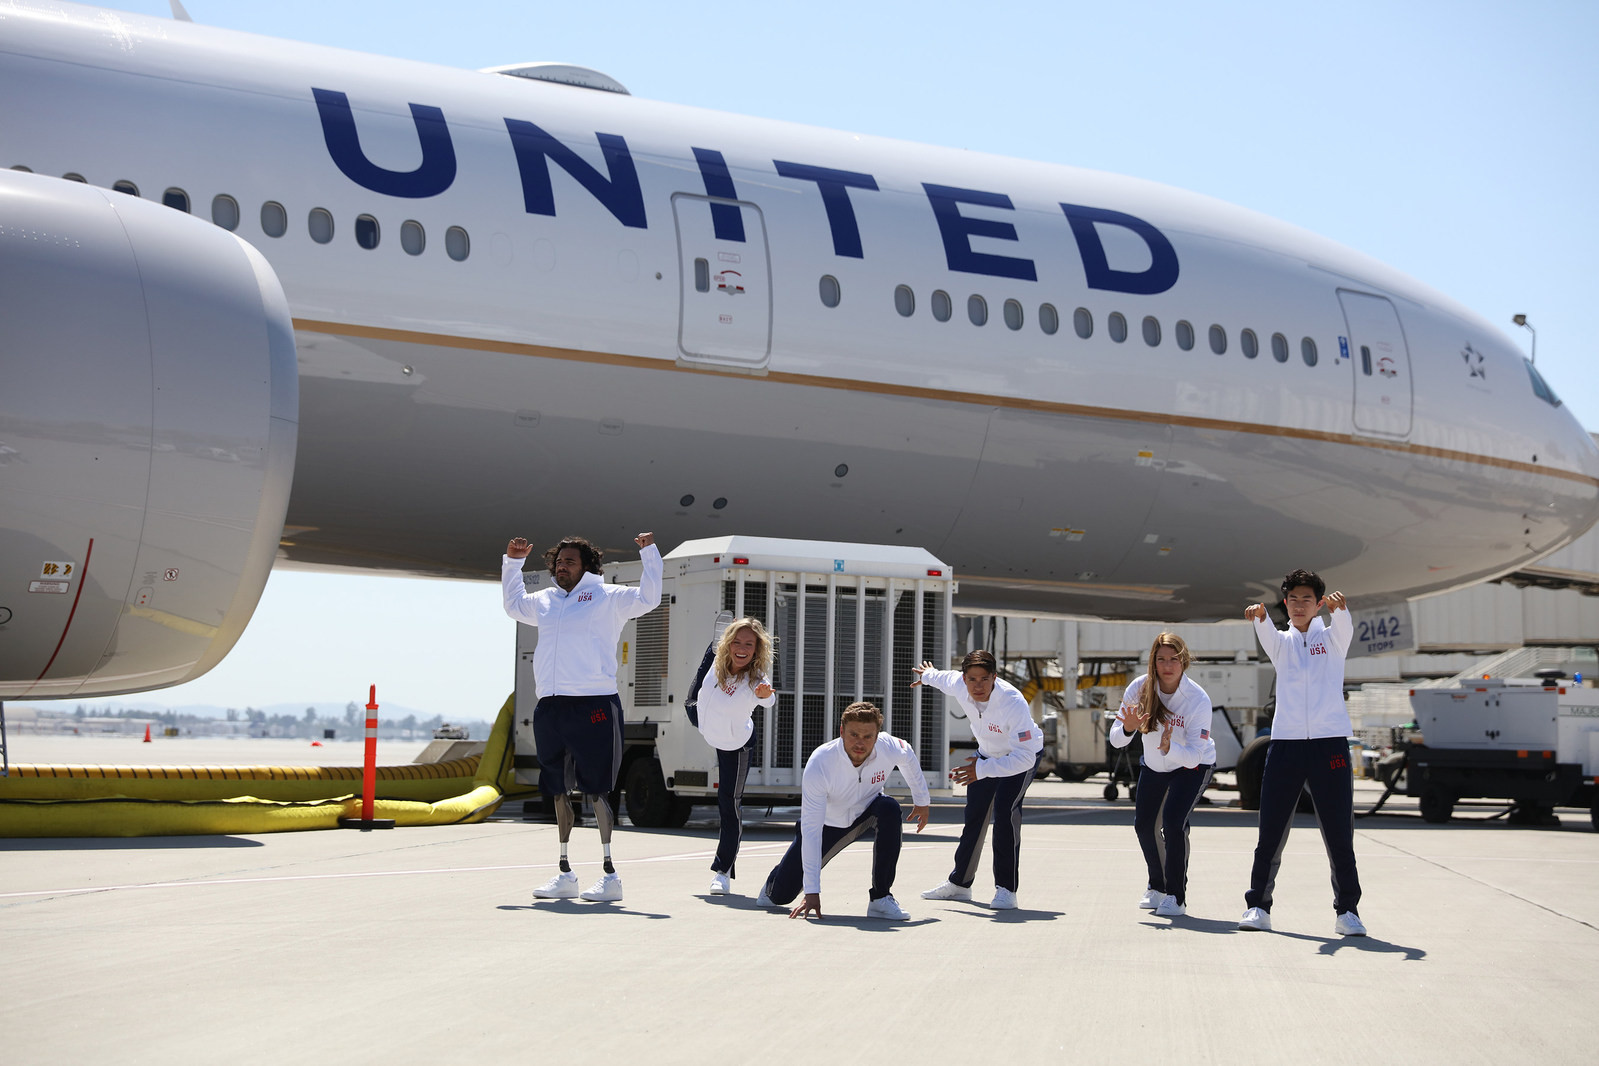 United will support six athletes in the build-up to Pyeongchang 2018 ©United